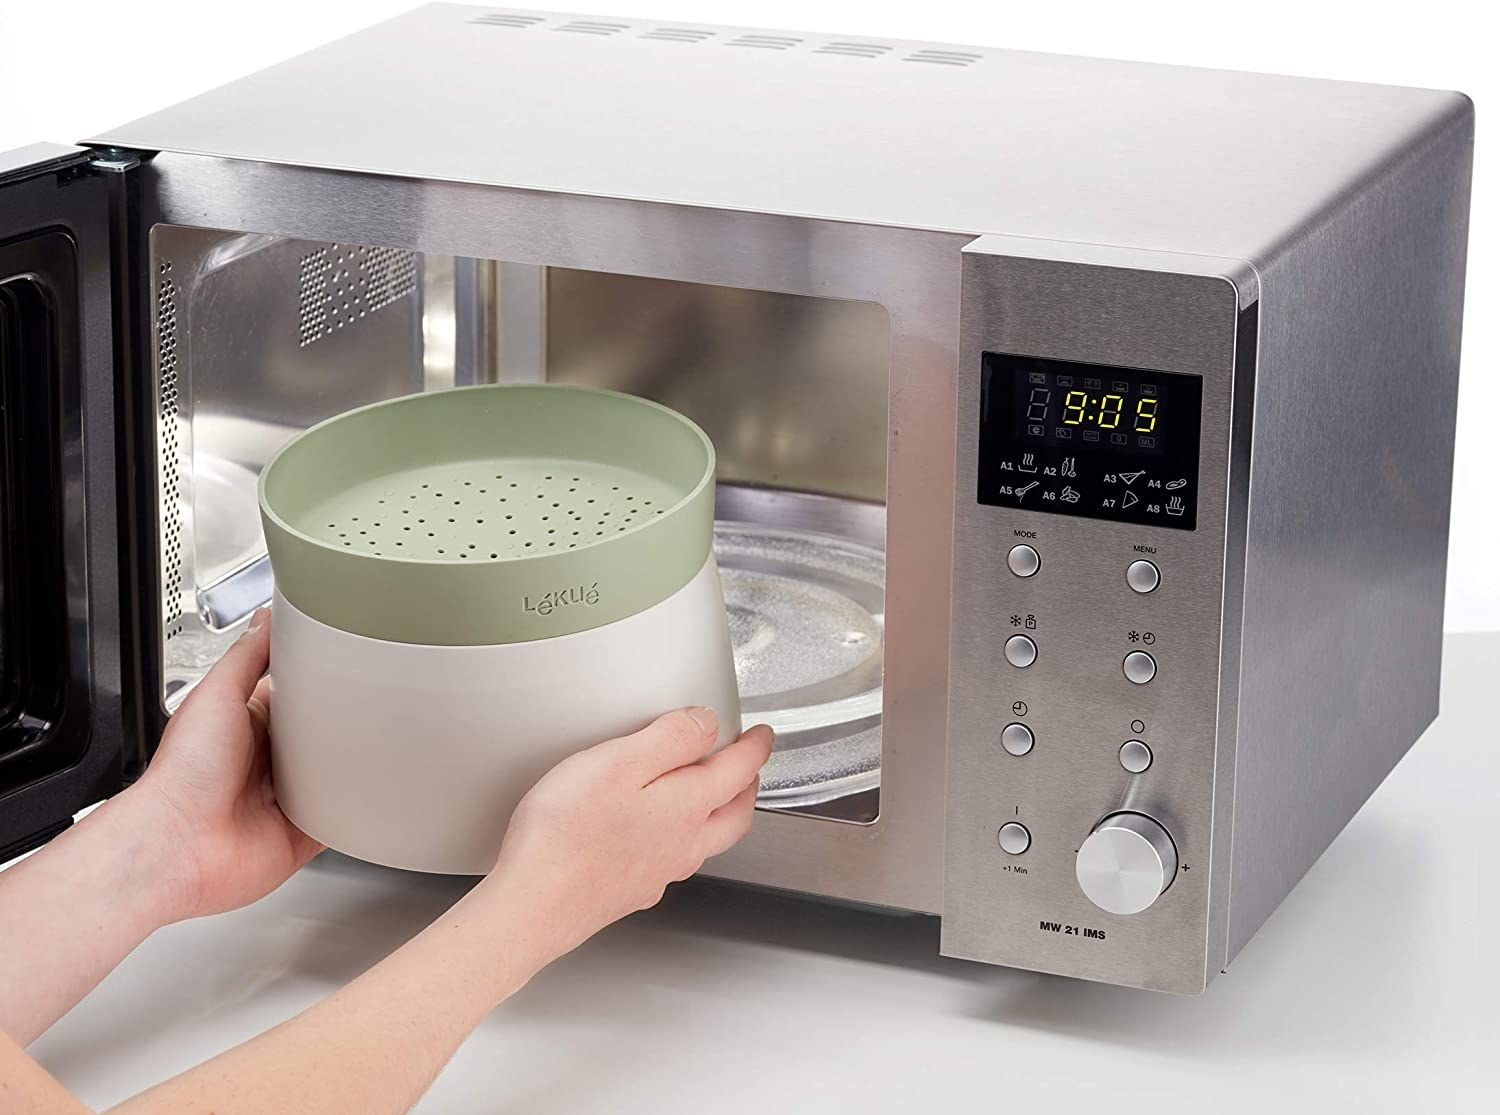 hand putting the green rice cooker into a microwave